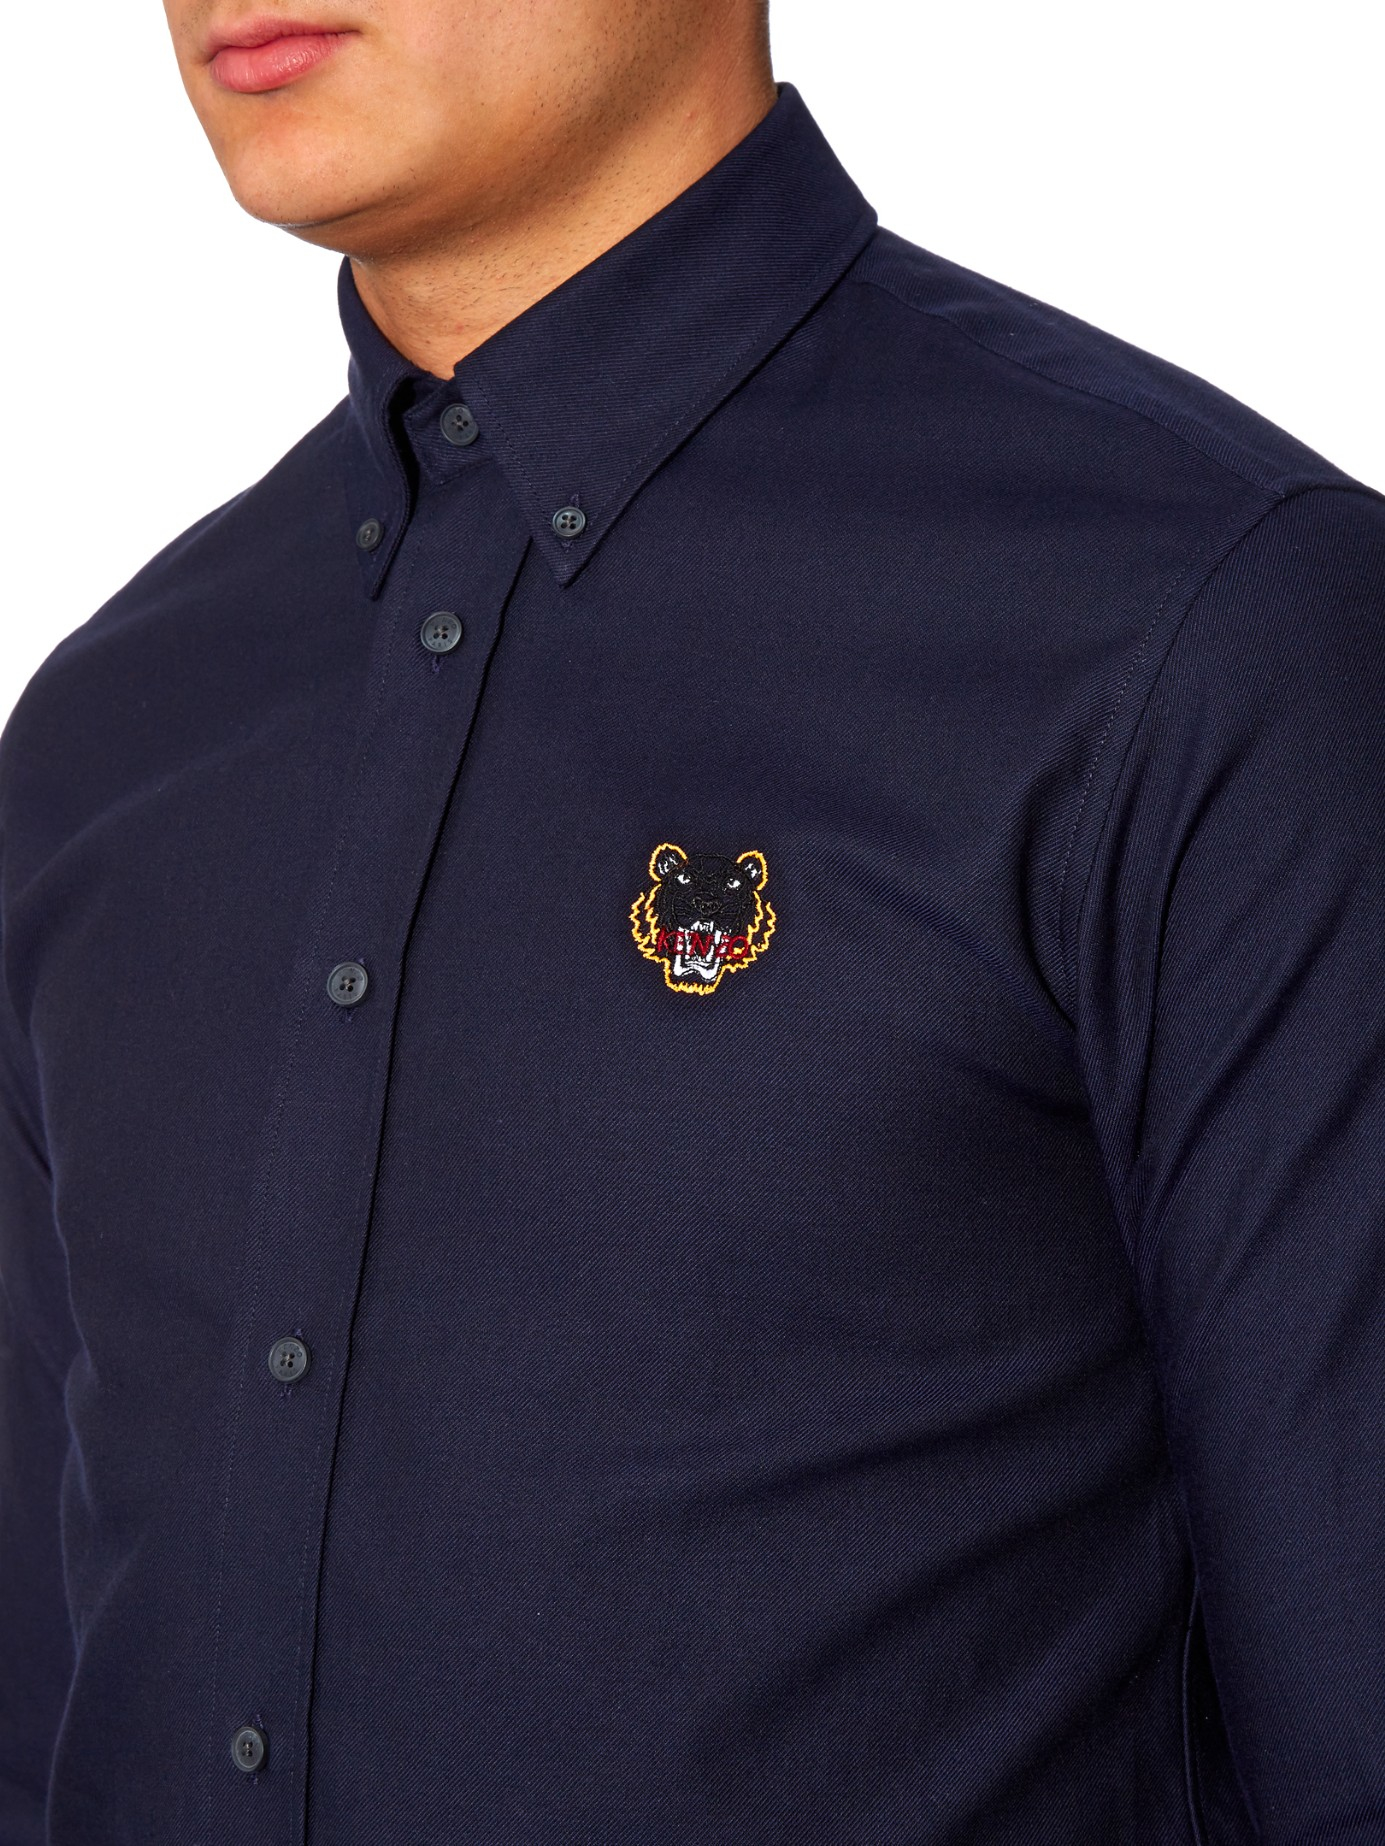 Kenzo tiger patch embroidered cotton shirt in blue for men